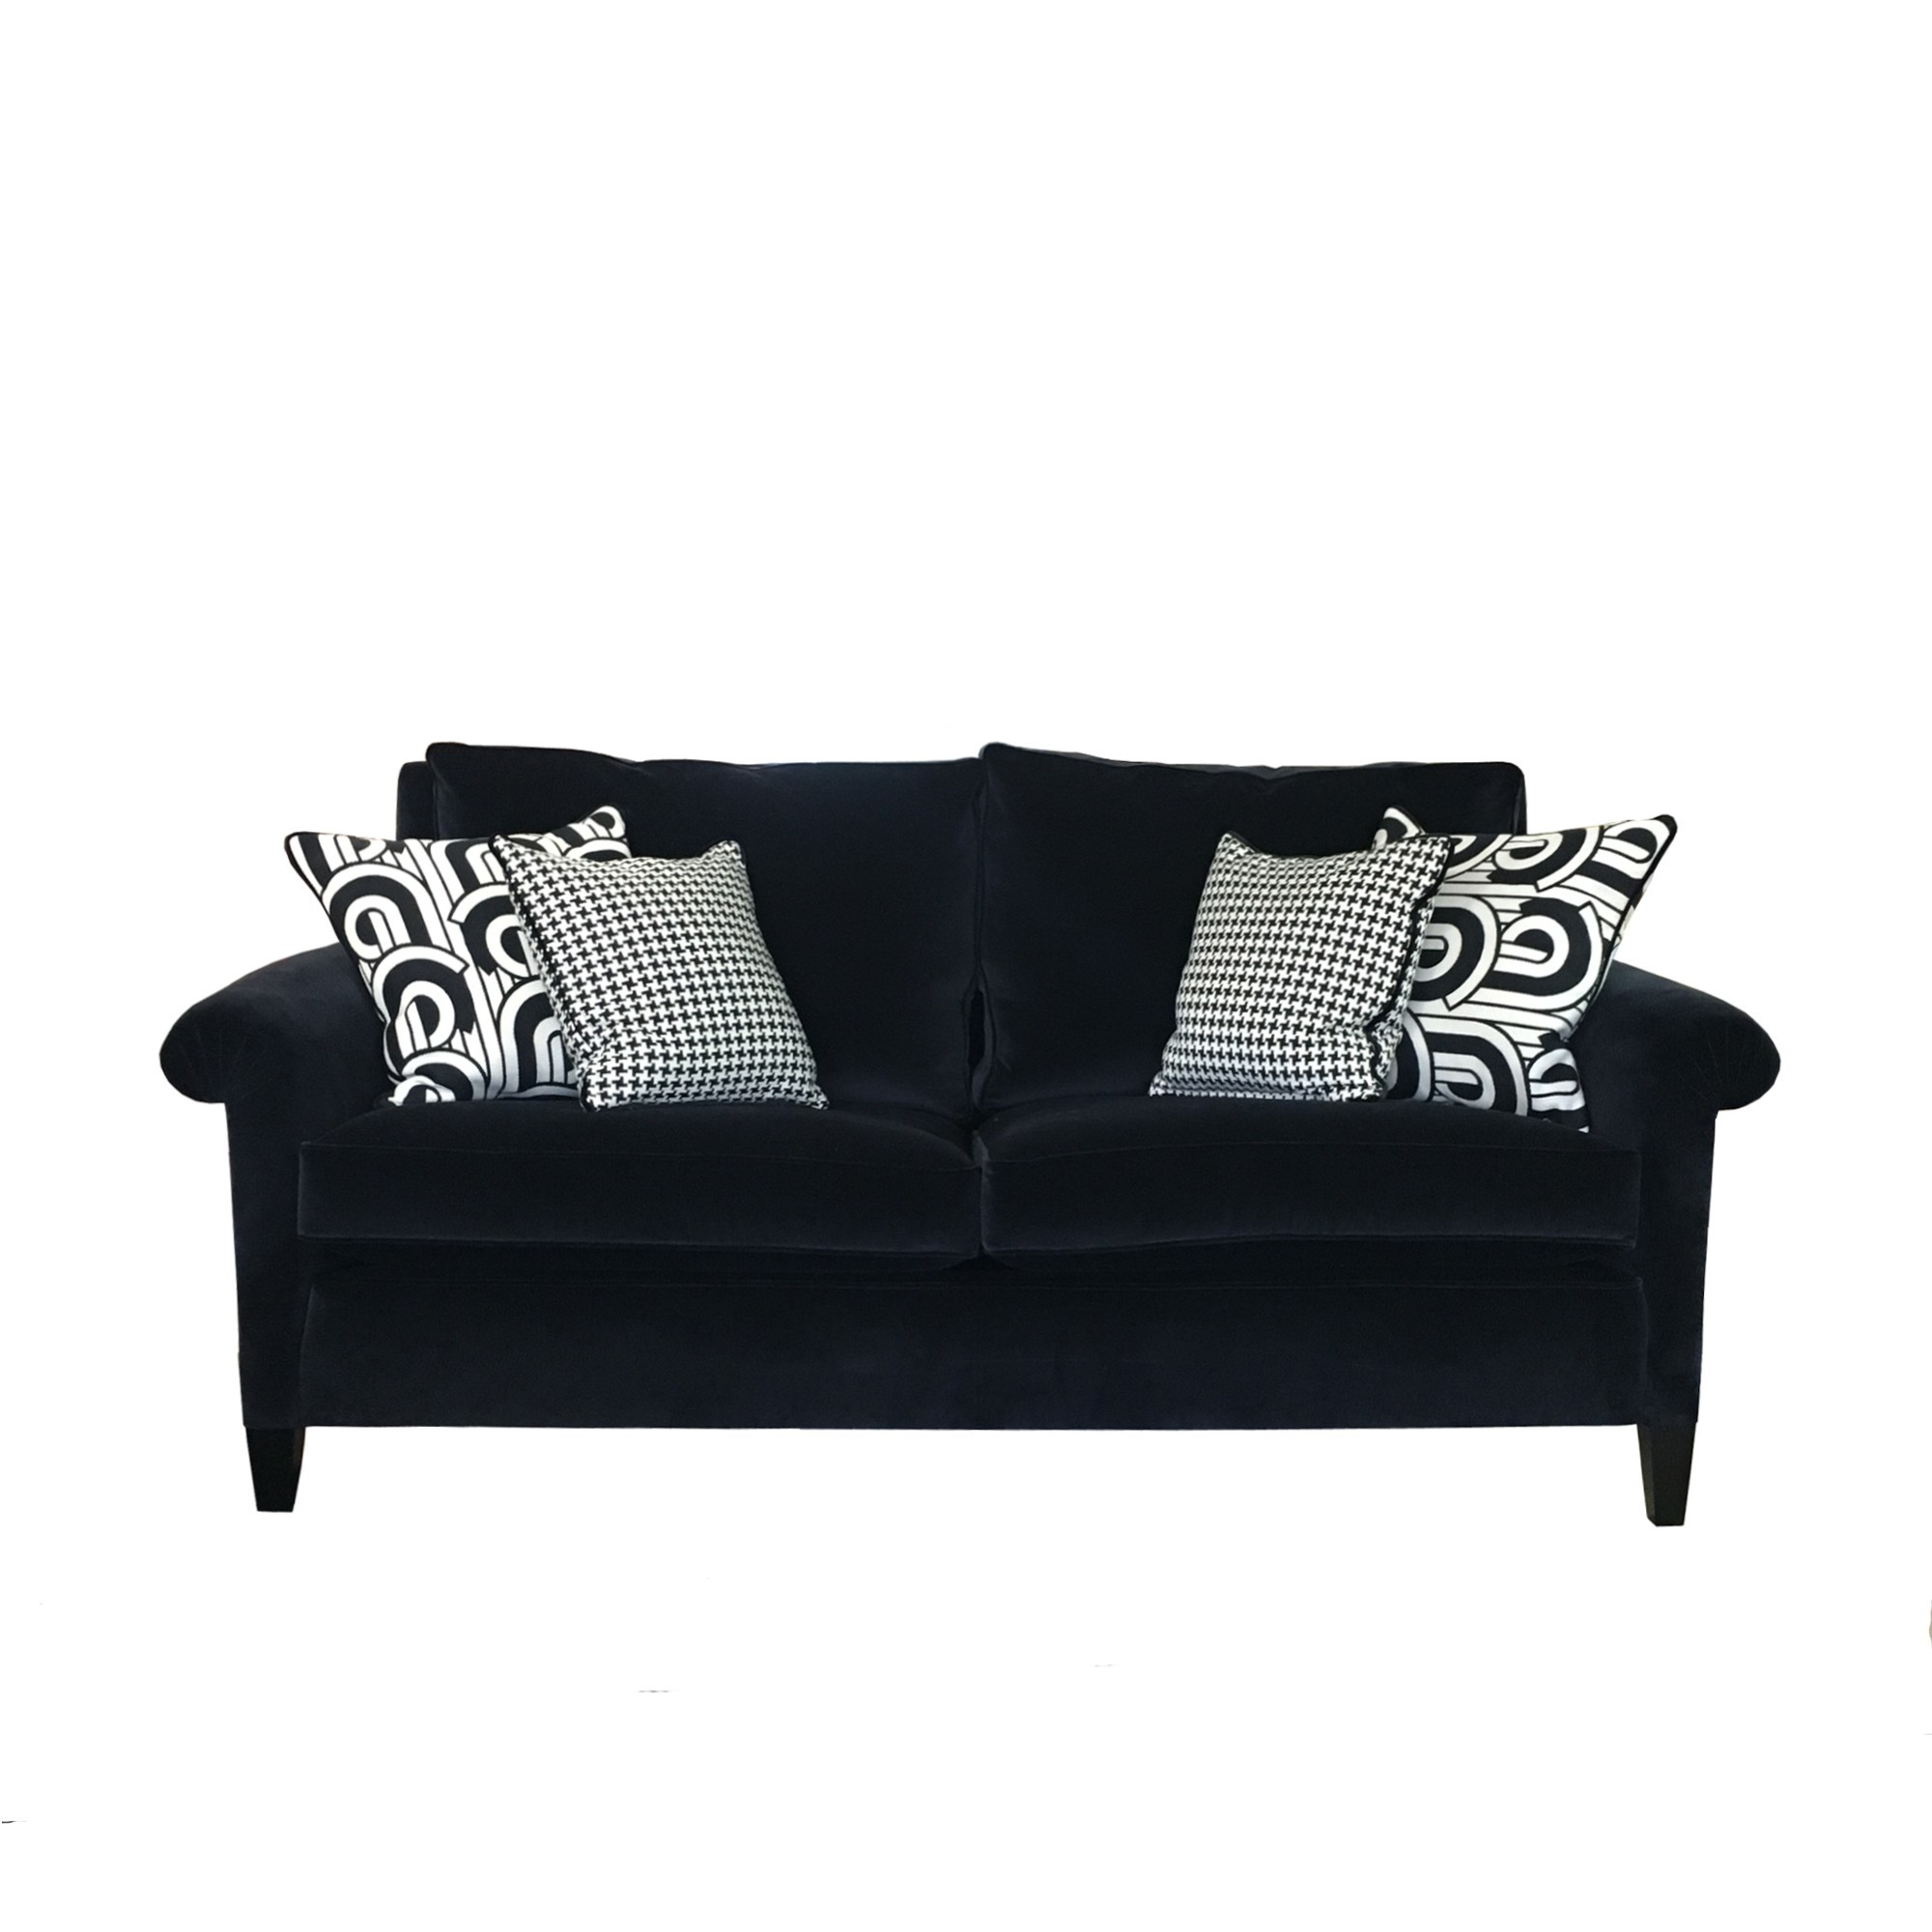 Charmant Duresta Gabrielle Studded Small Sofa